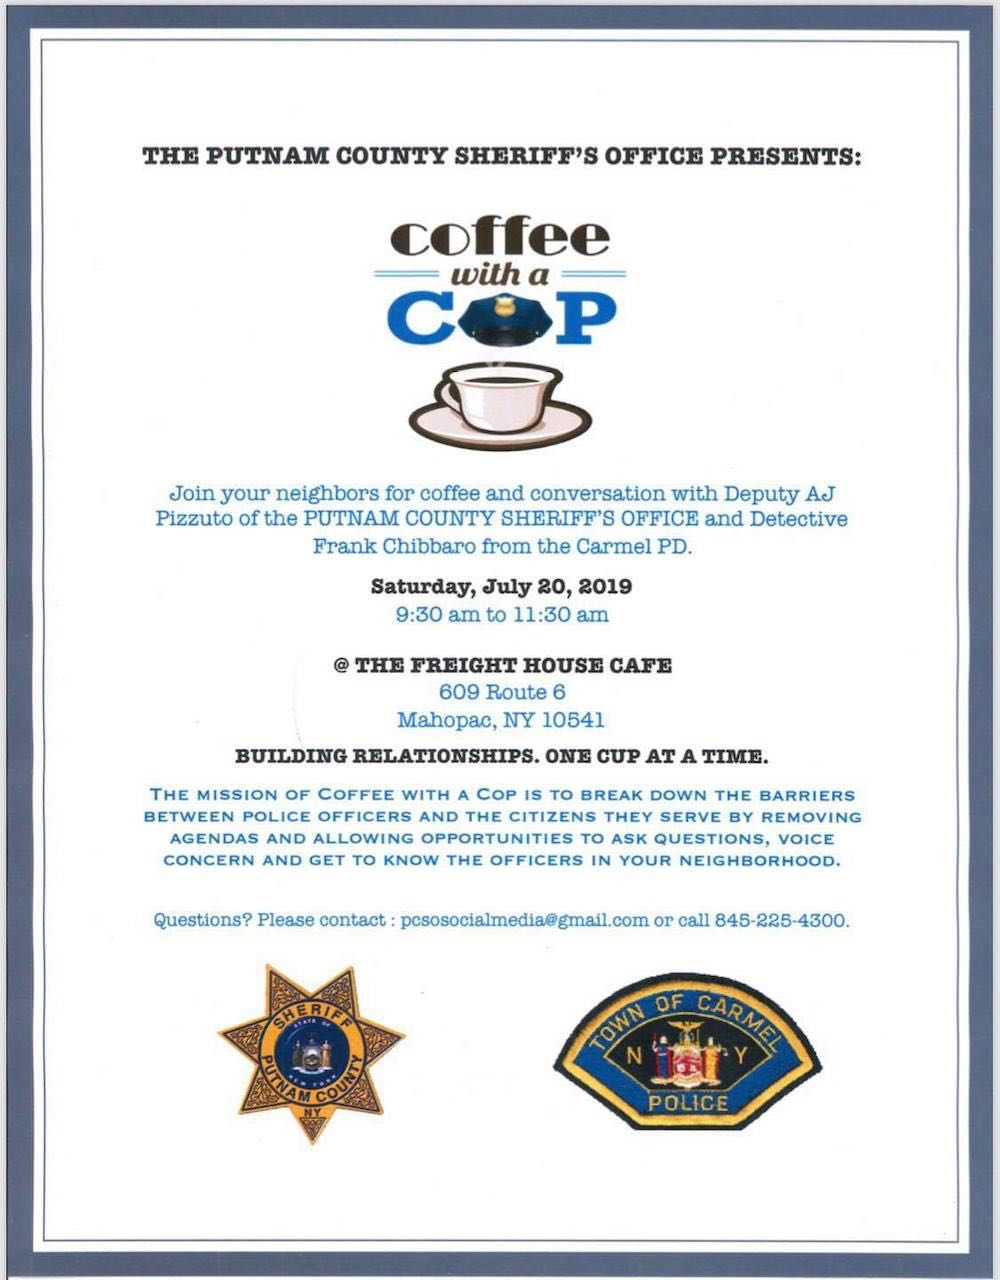 THE PUTNAM COUNTY SHERIFF'S OFFICE PRESENTS: Coffee with a COP